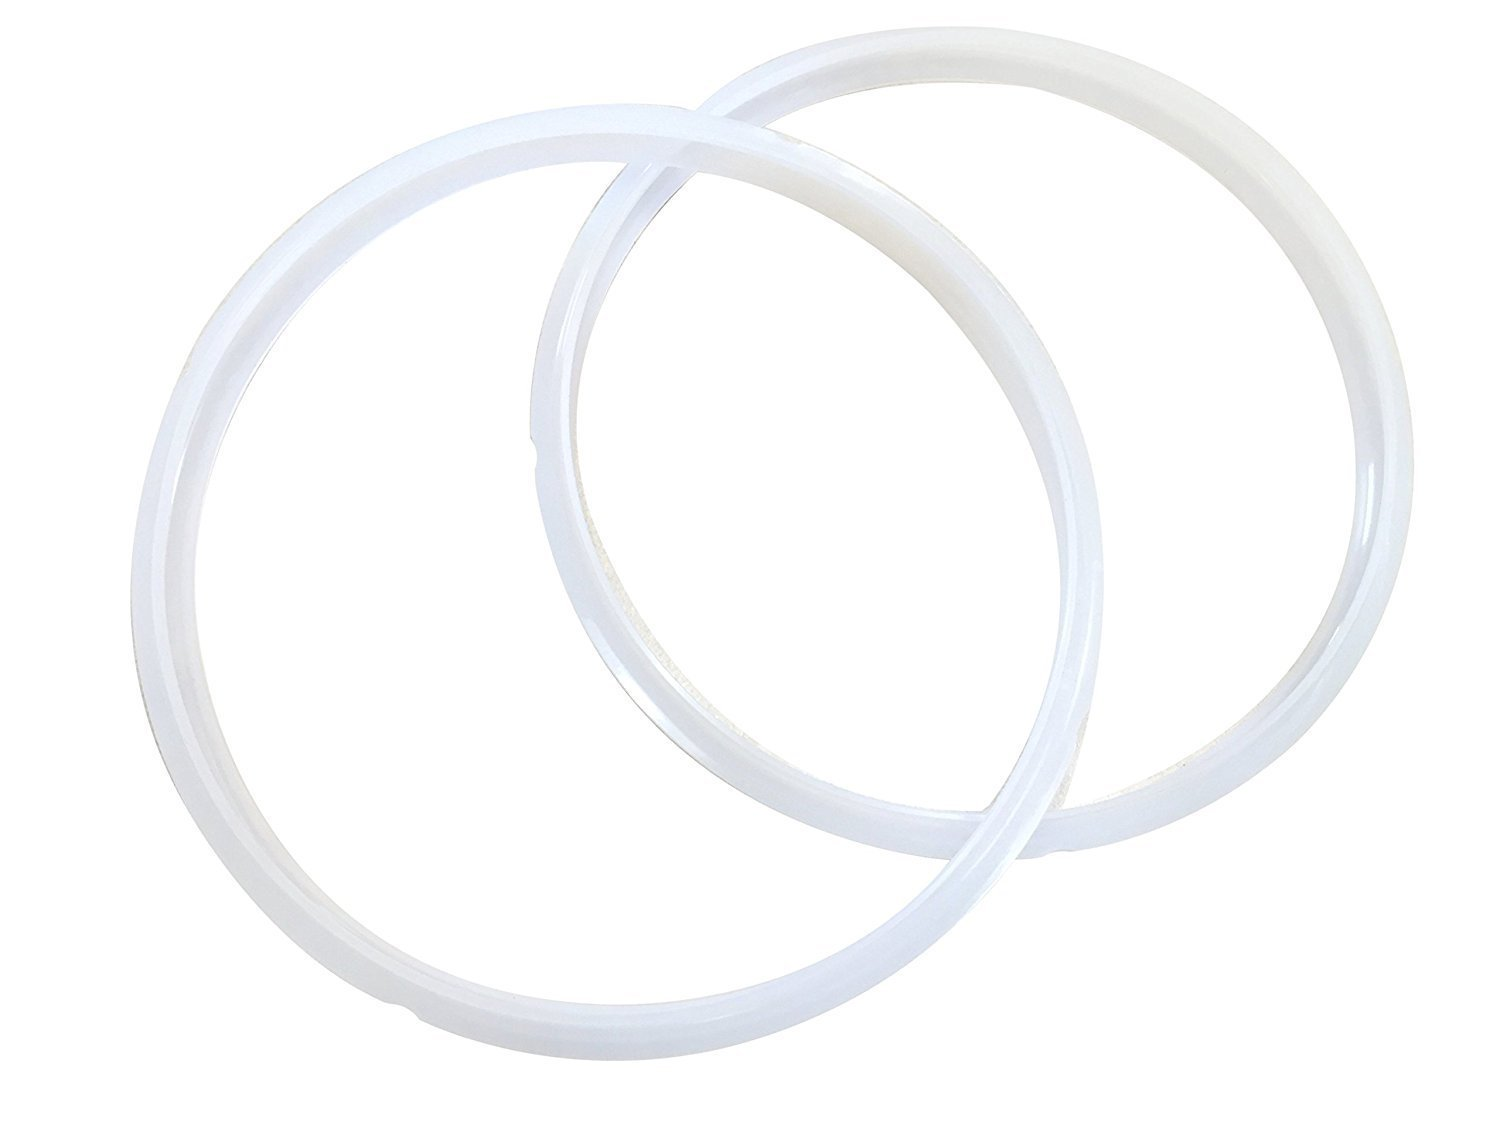 TWIN PACK: Two Rubber Gaskets For 8 Quart Power Pressure Cookers